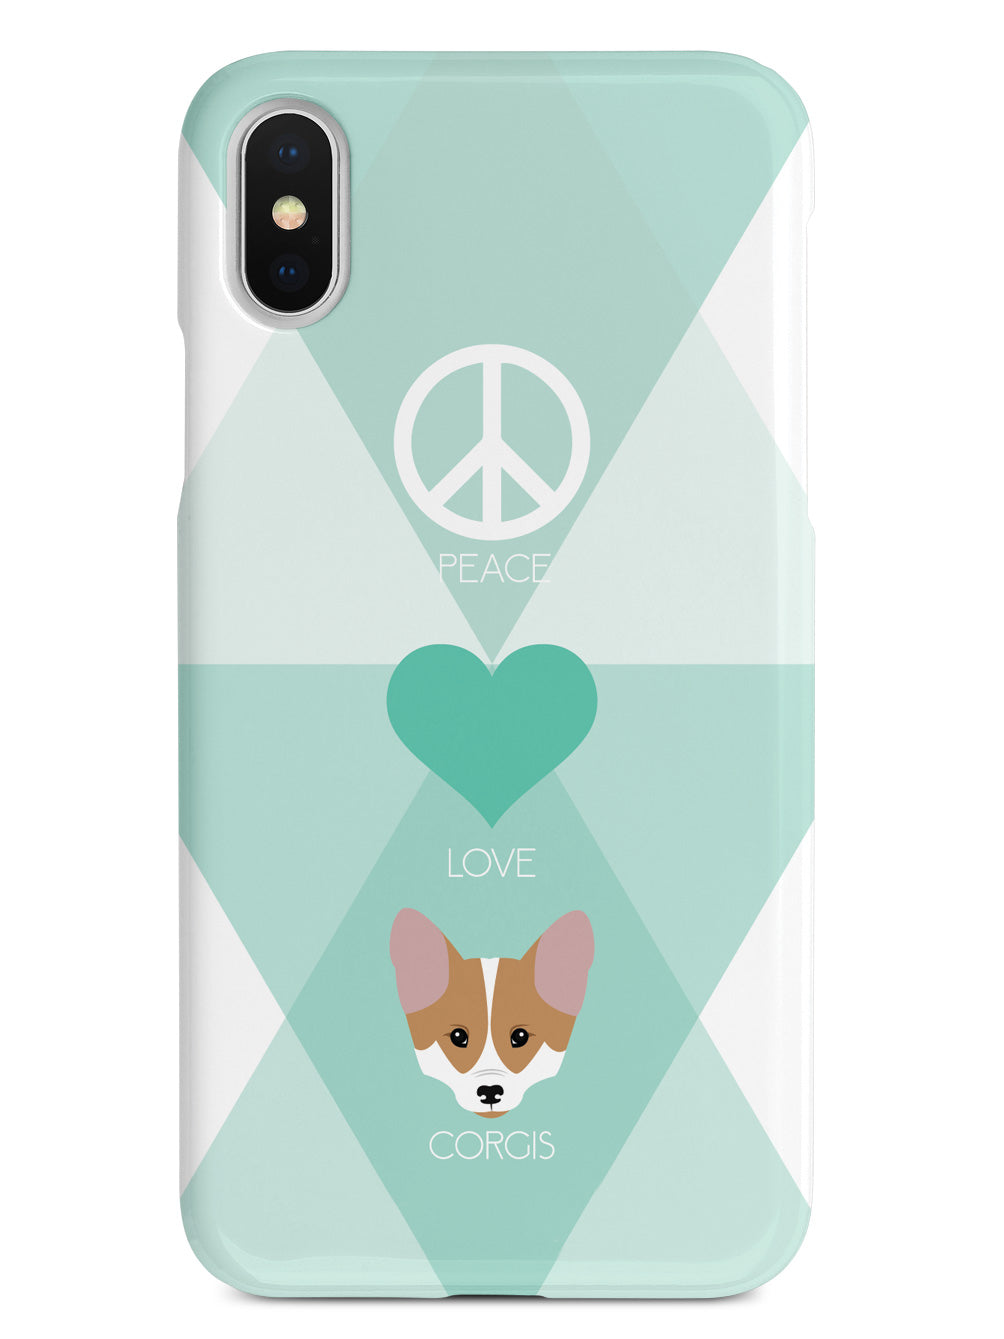 Peace, Love & Corgis Case